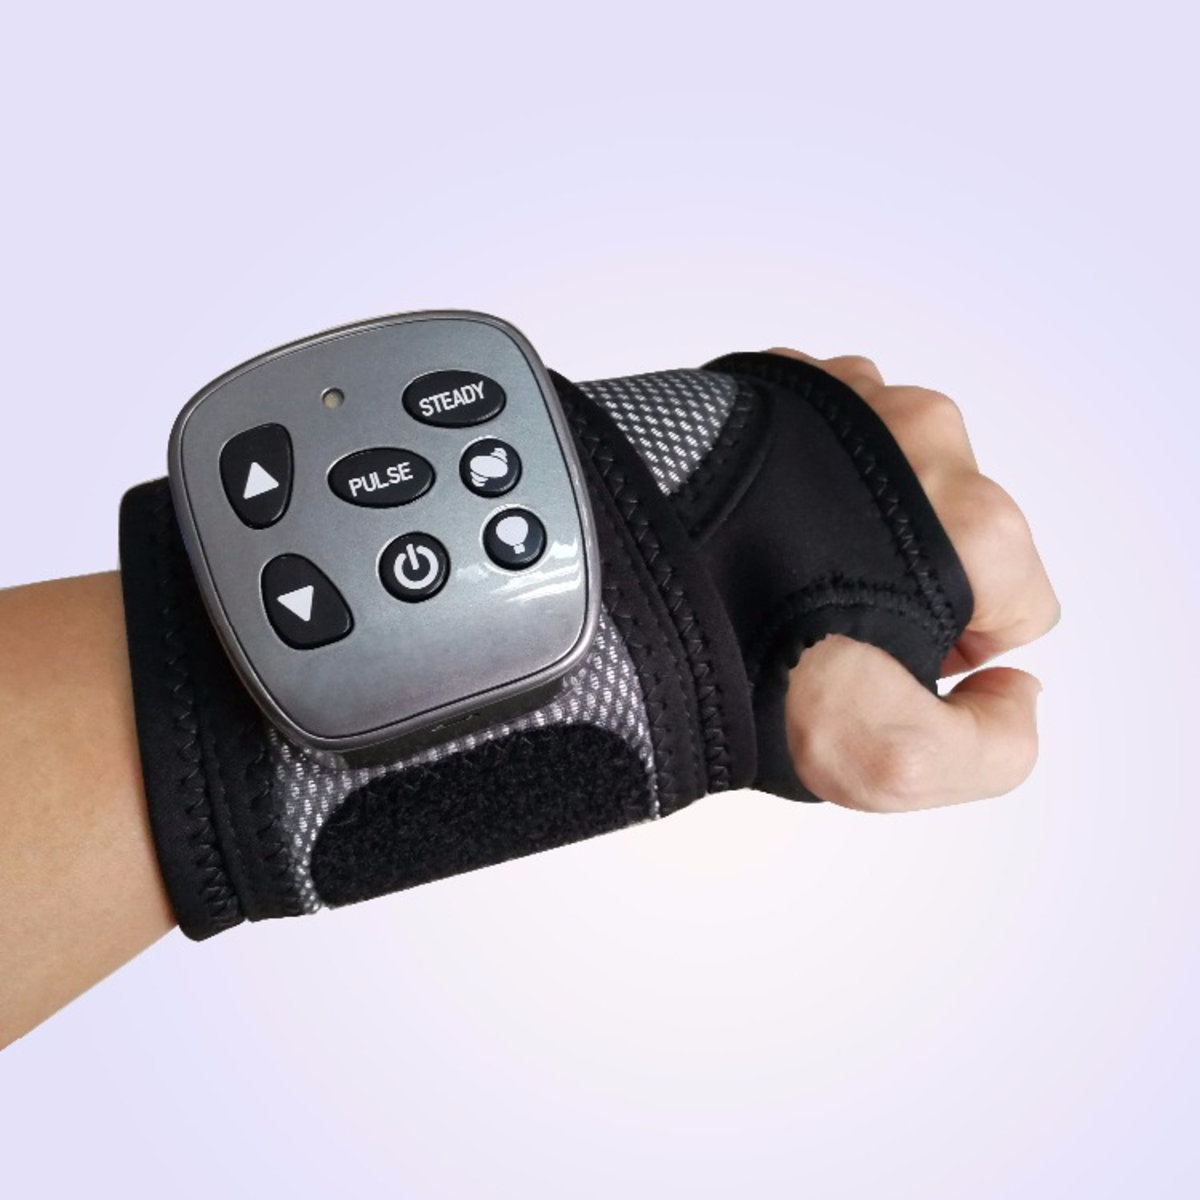 Micro Sun - Wrist Massage device With Heating & Vibration Function (newest)